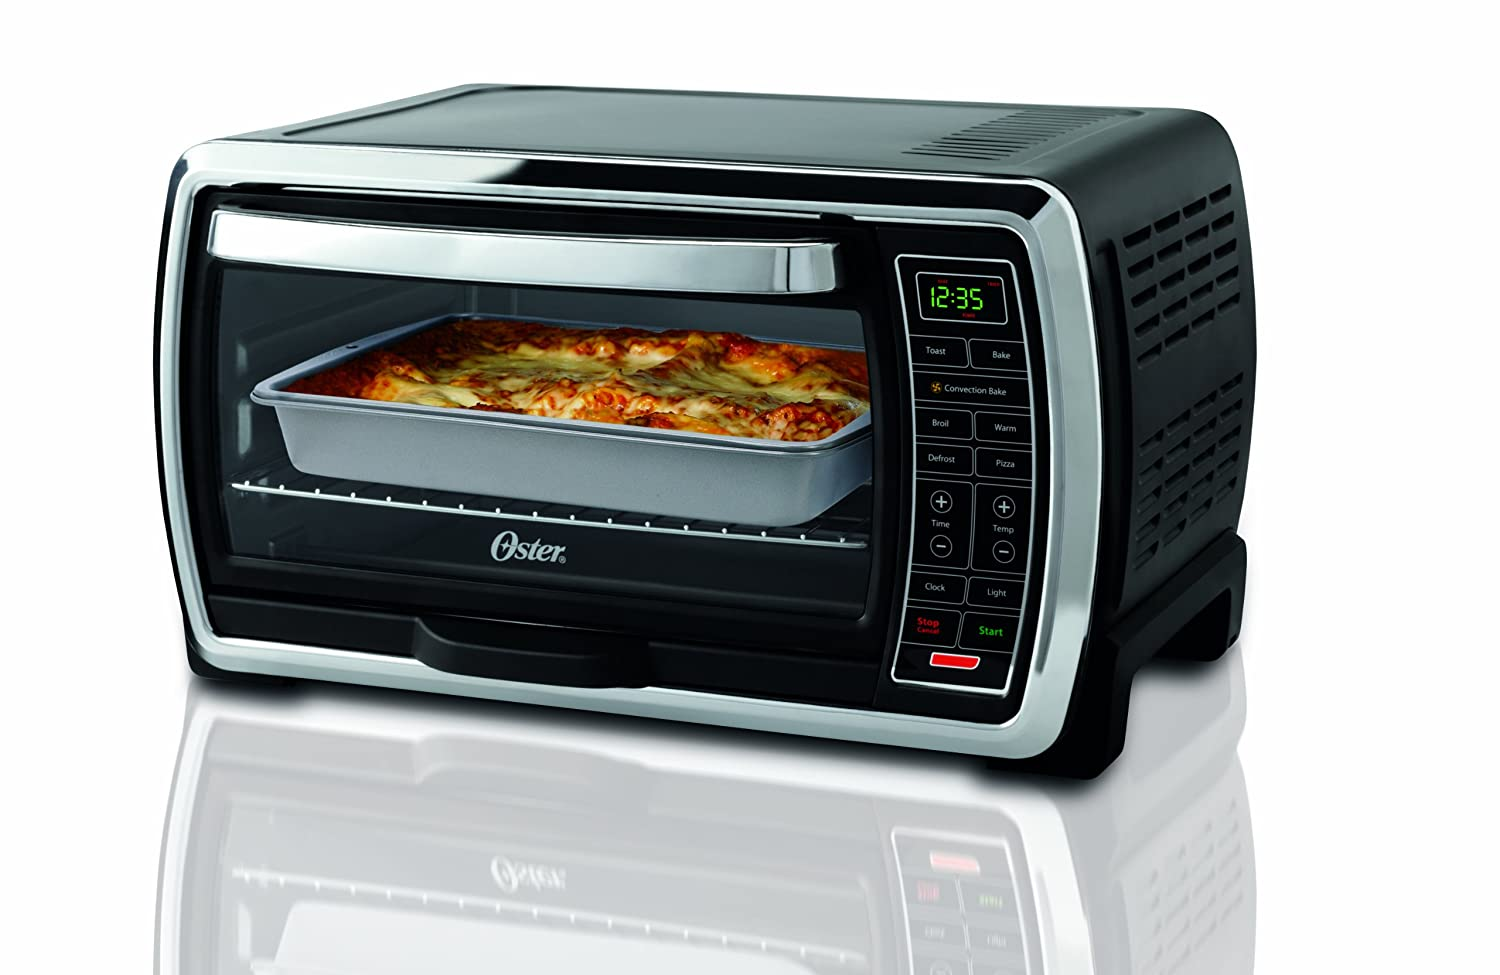 ... Countertop 6-Slice Digital Convection Toaster Oven, Black NEW eBay